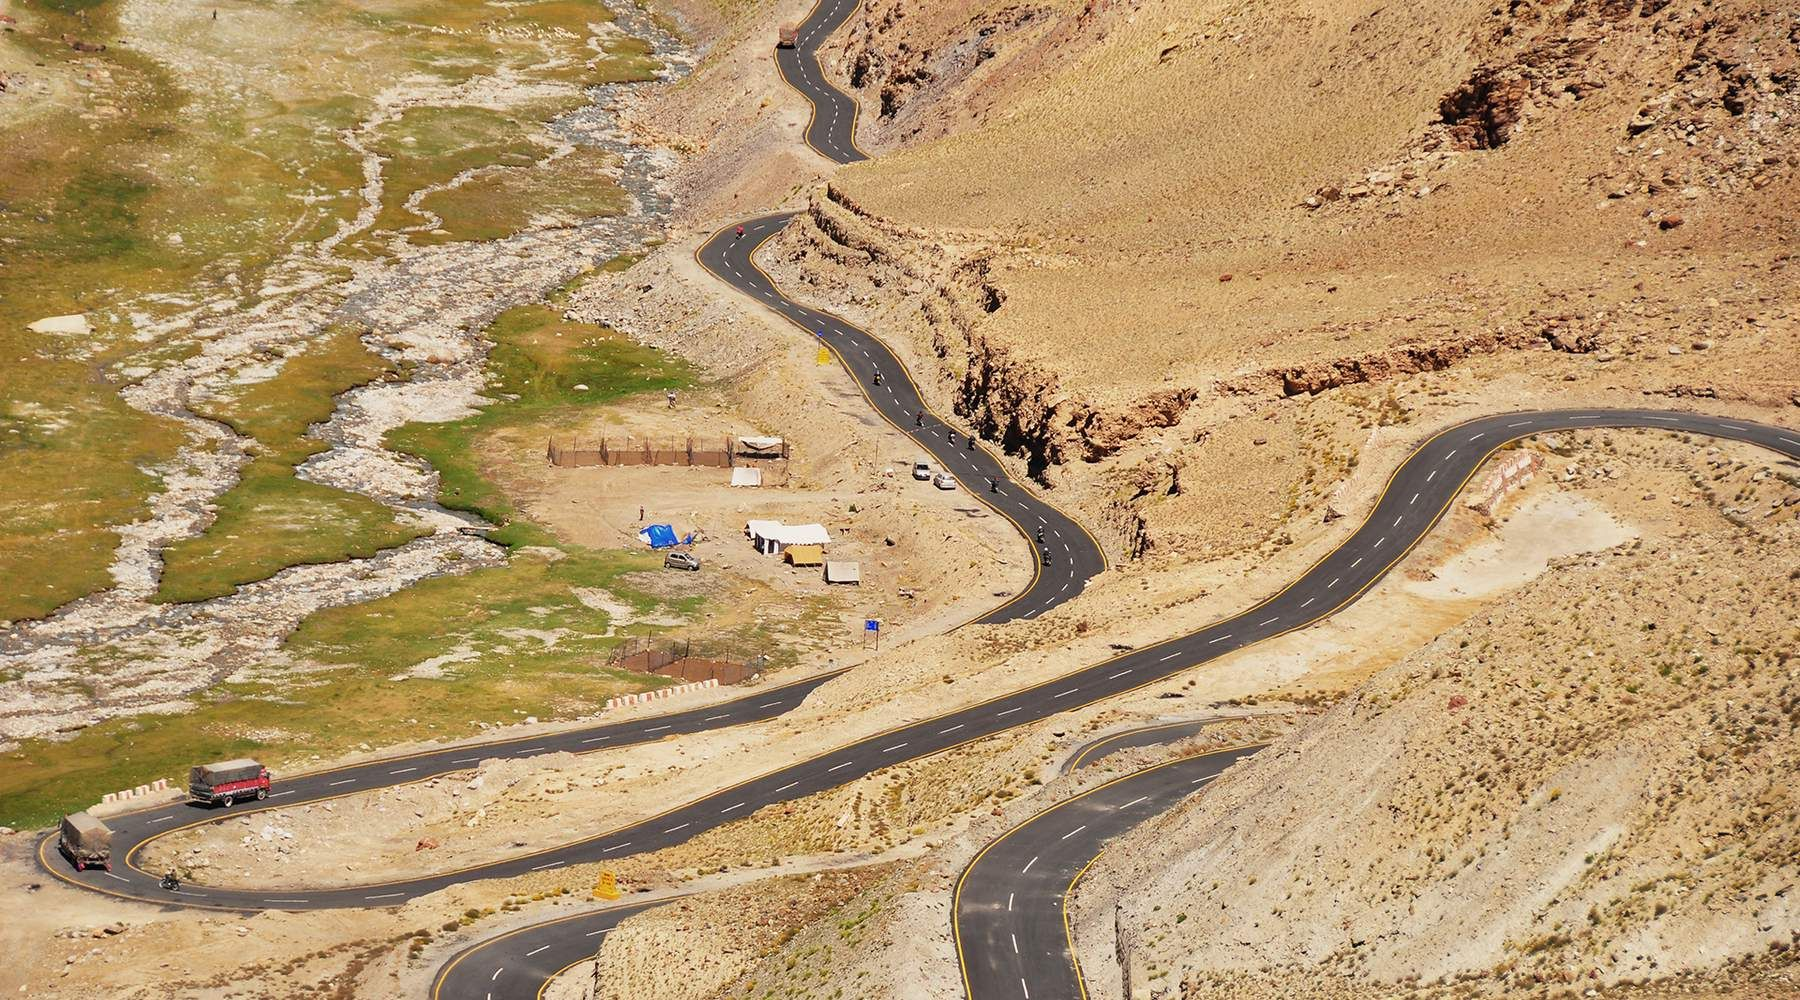 Way of the road - Himalaya Himalaya #7e520747-6052-484c-b9a0-f9d5442c4421